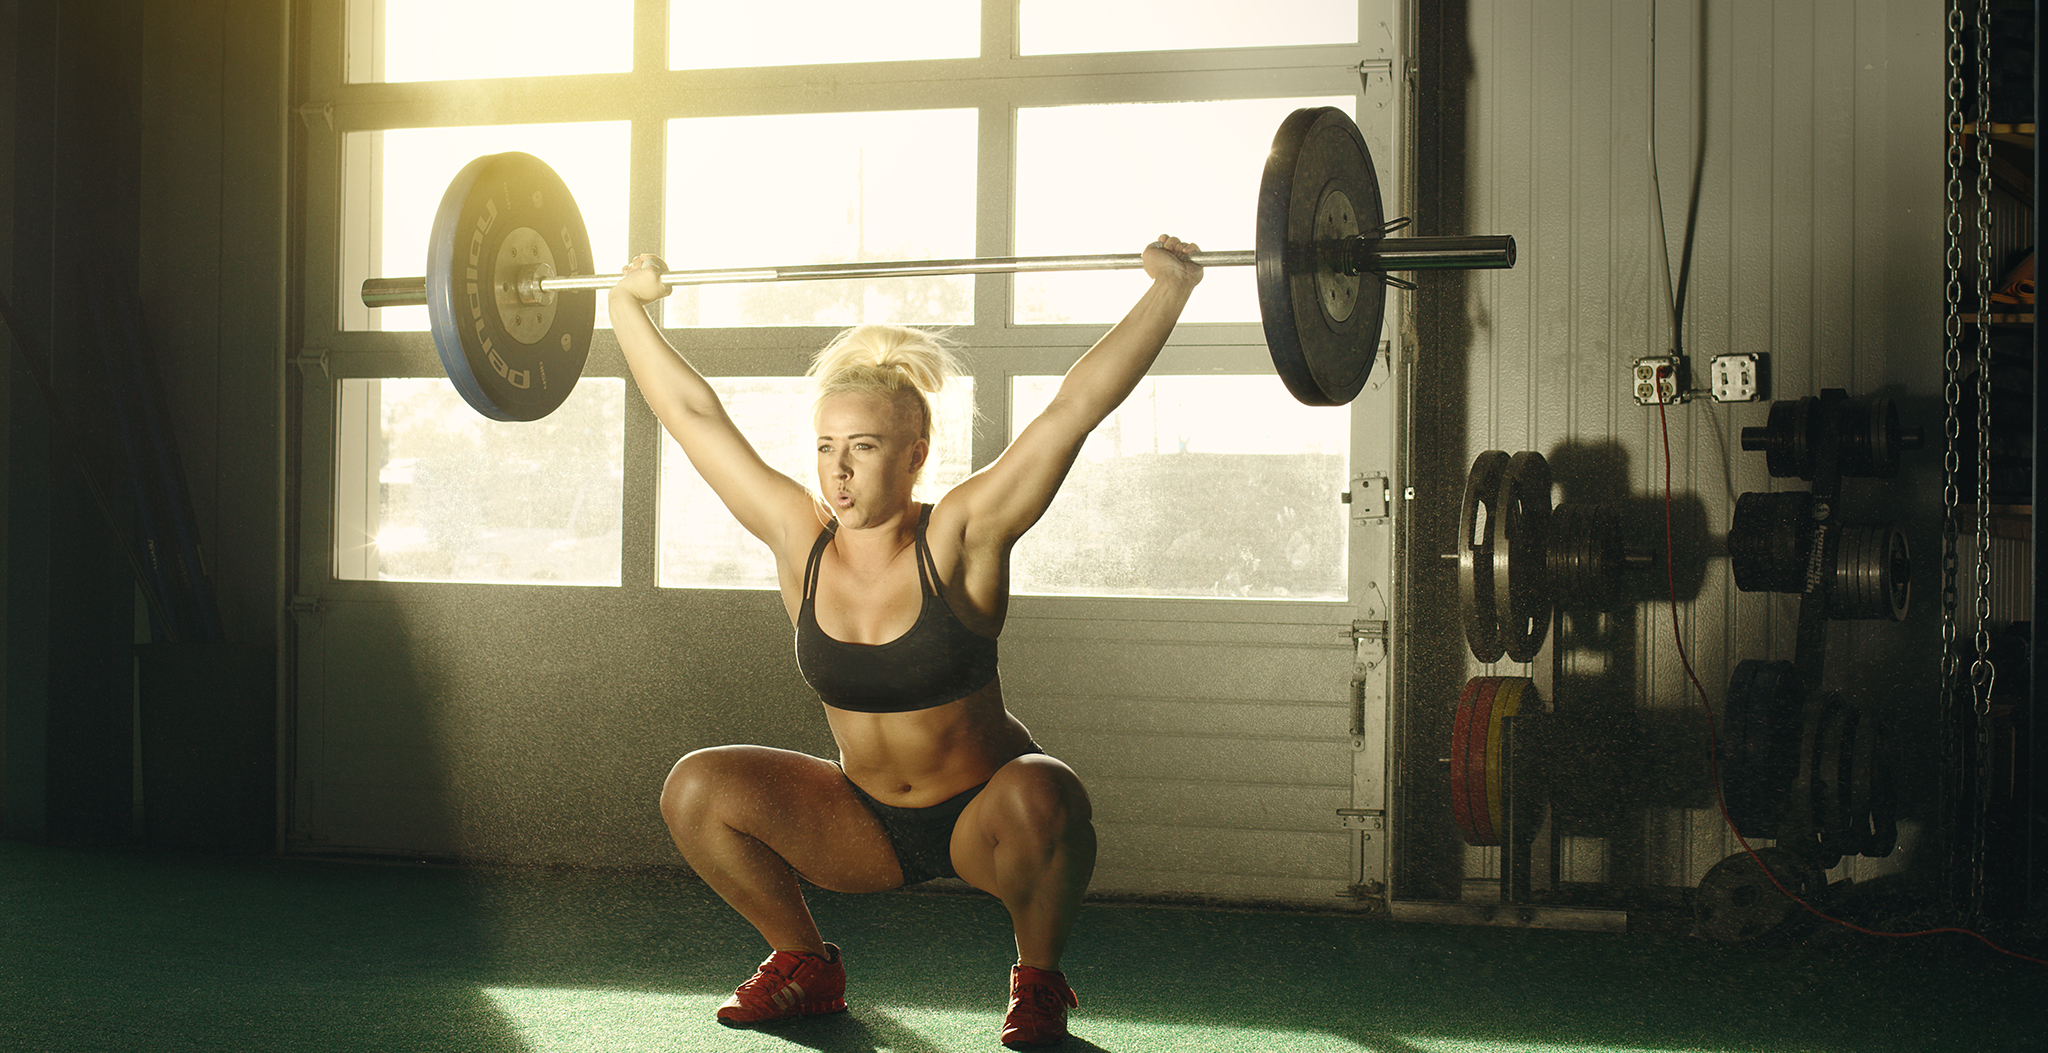 Crossfit Female Athlete Action